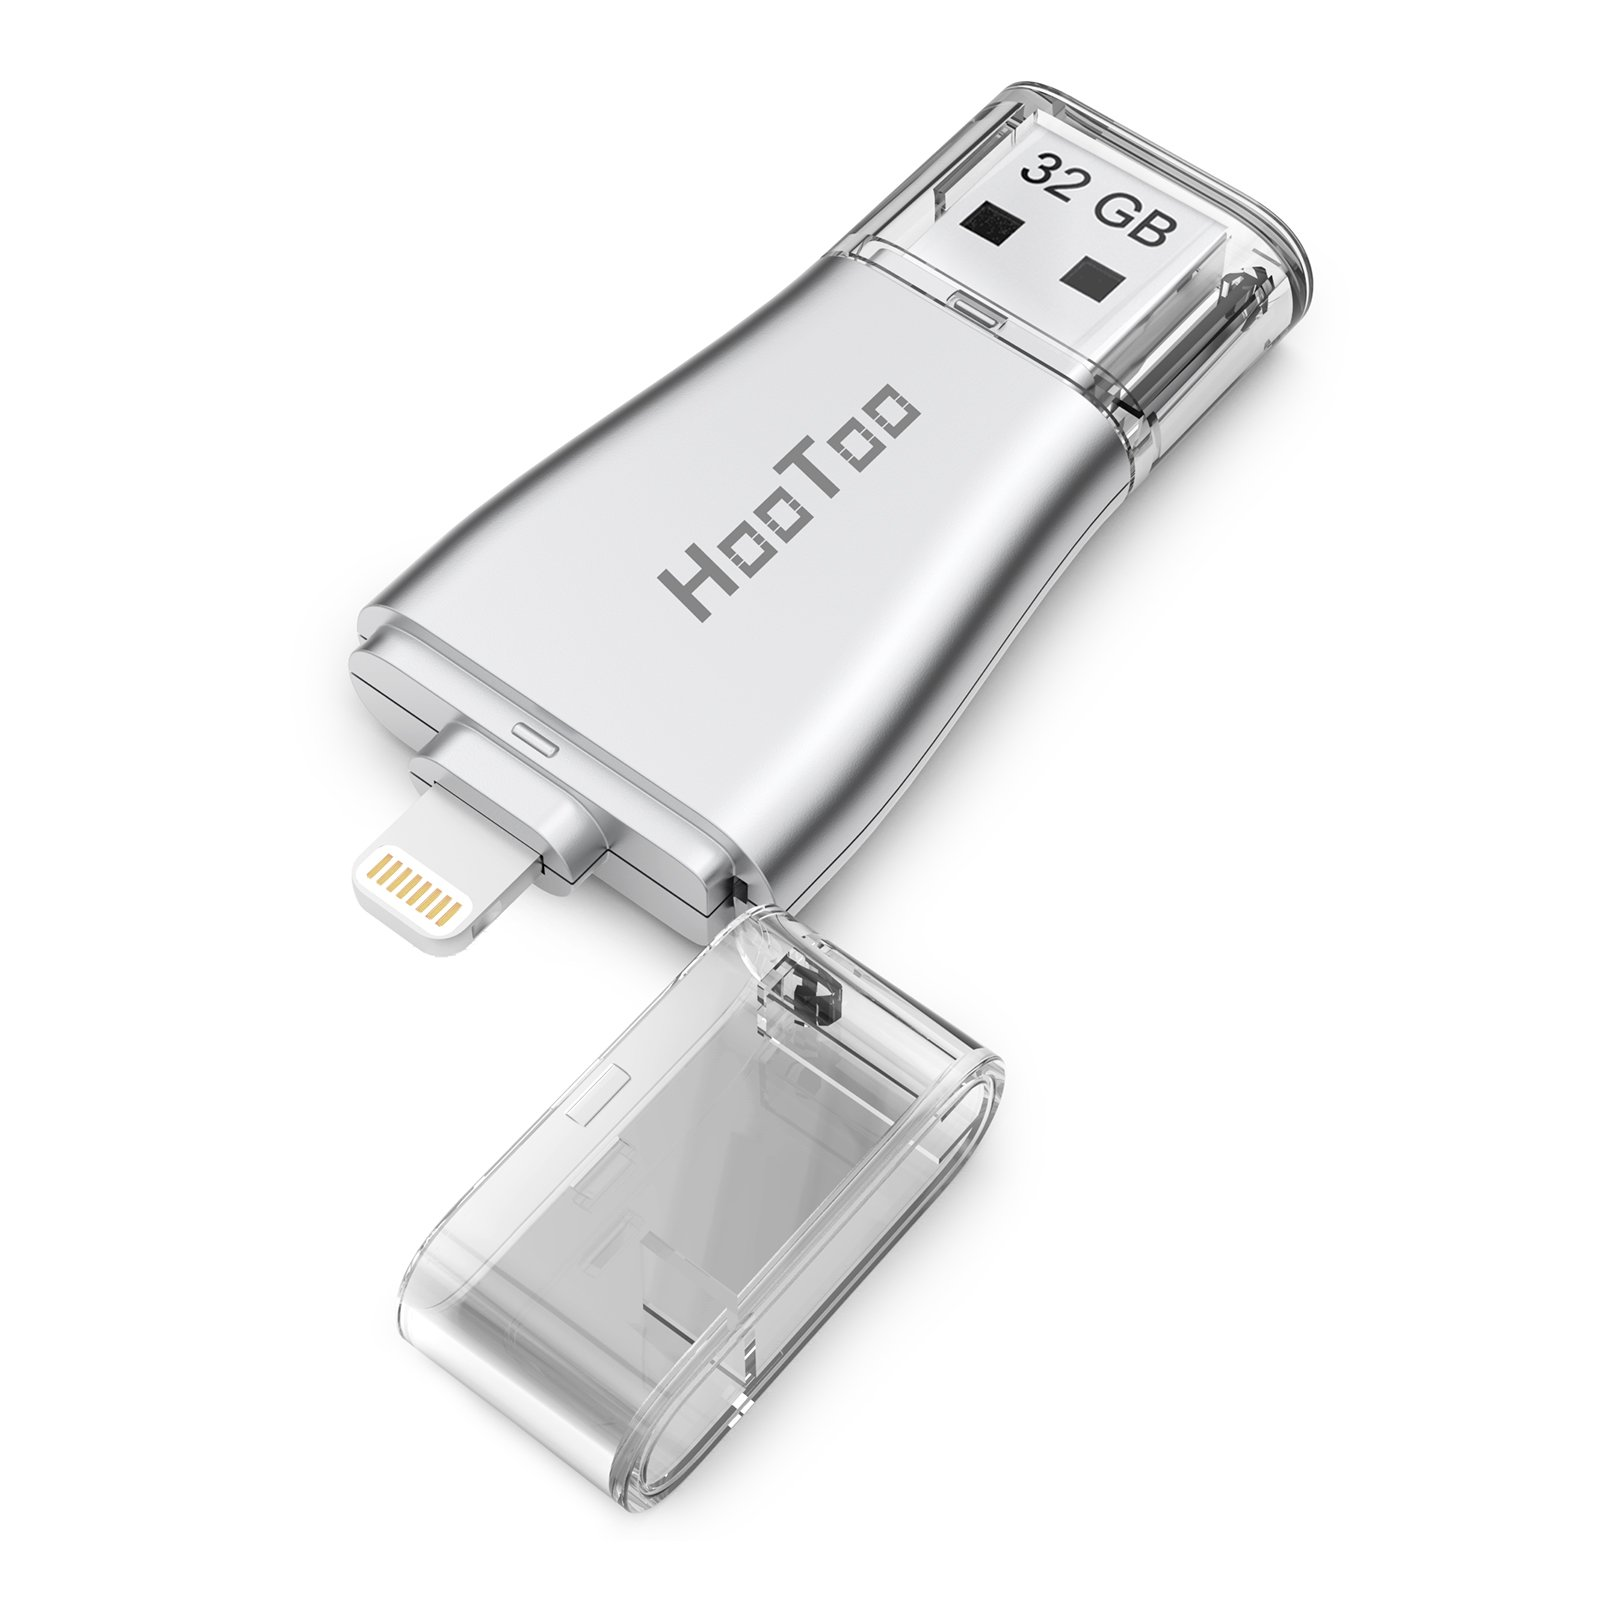 HooToo iPhone iPad Flash Drive 32GB USB 3.0 Memory Stick with Extended Lightning Connector for iPod iOS Windows Mac, External Storage Expansion